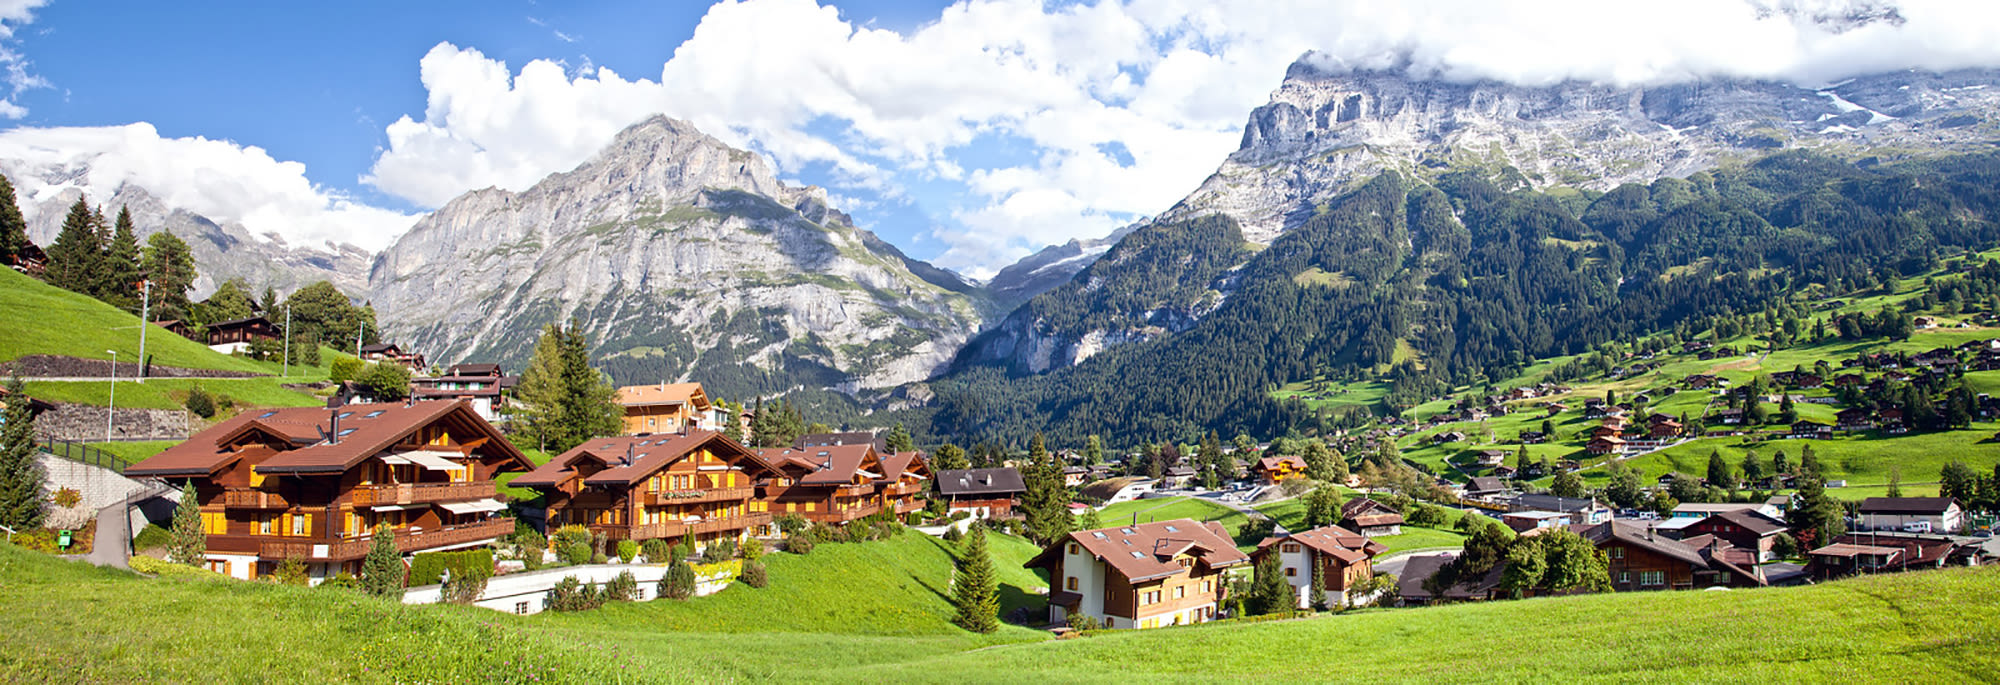 grindelwald-village with mountains